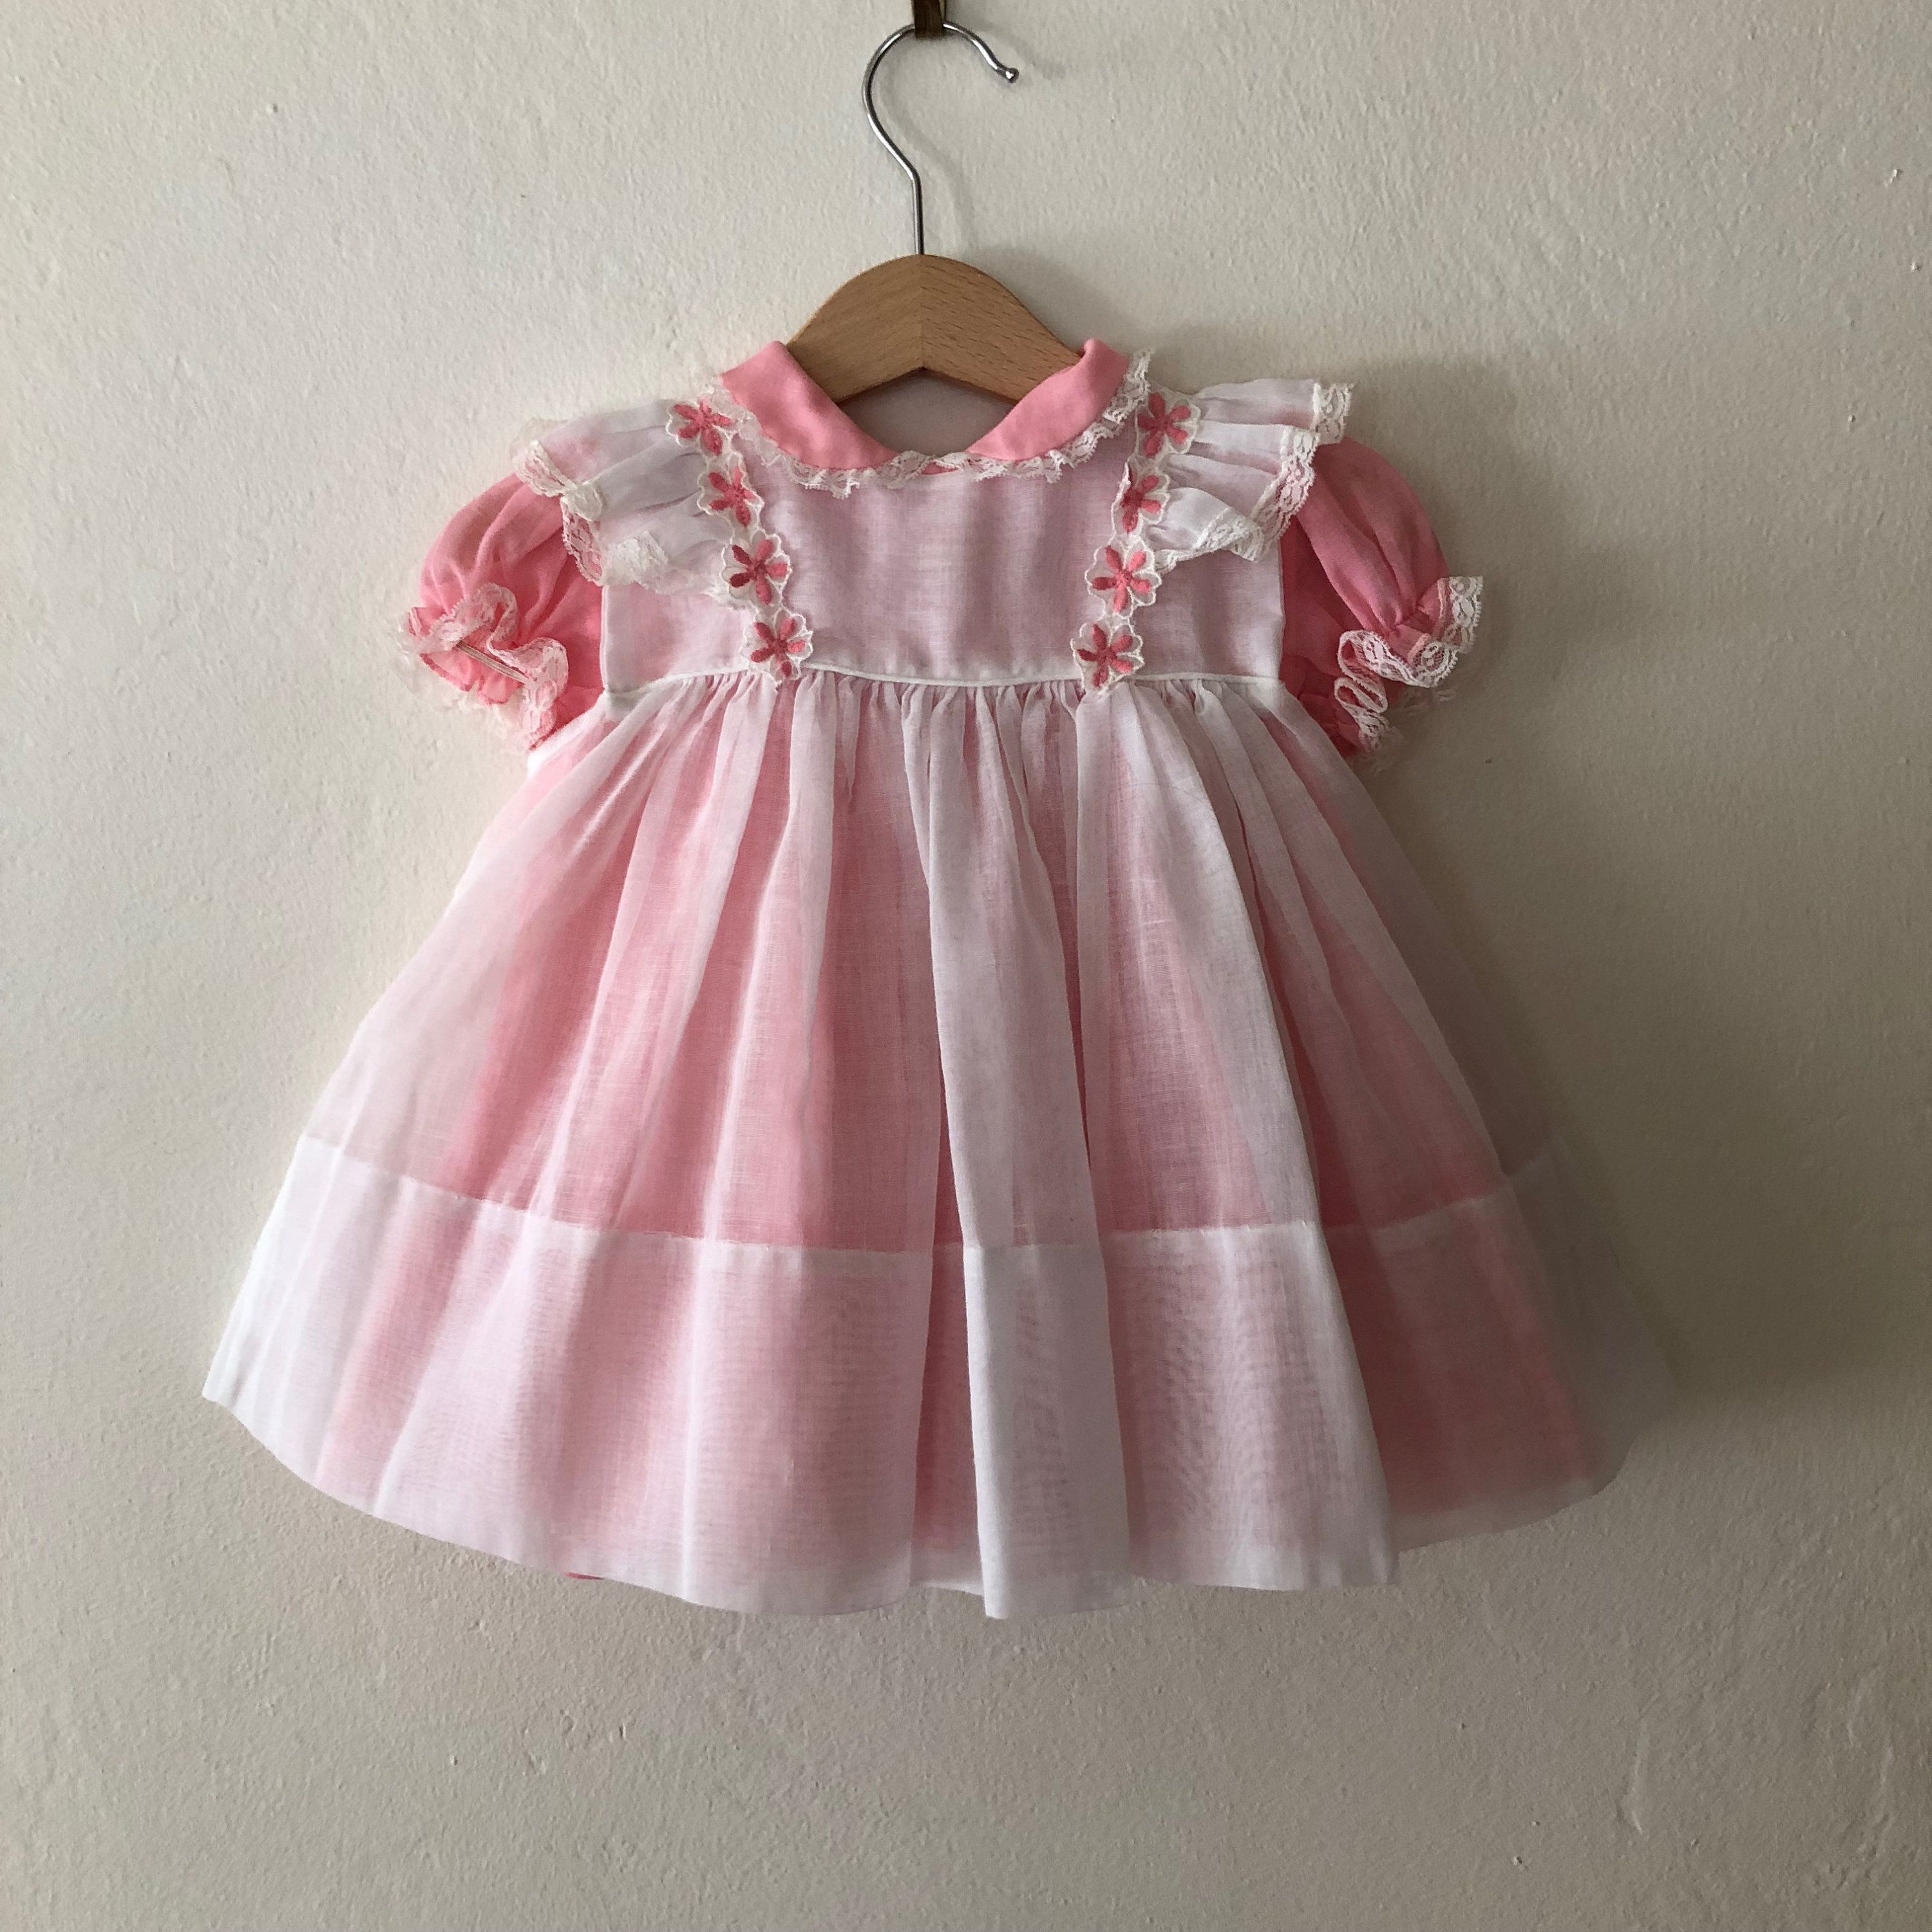 Vintage Baby Pinafore 6 Piece Dress, Vintage Baby Easter Dress